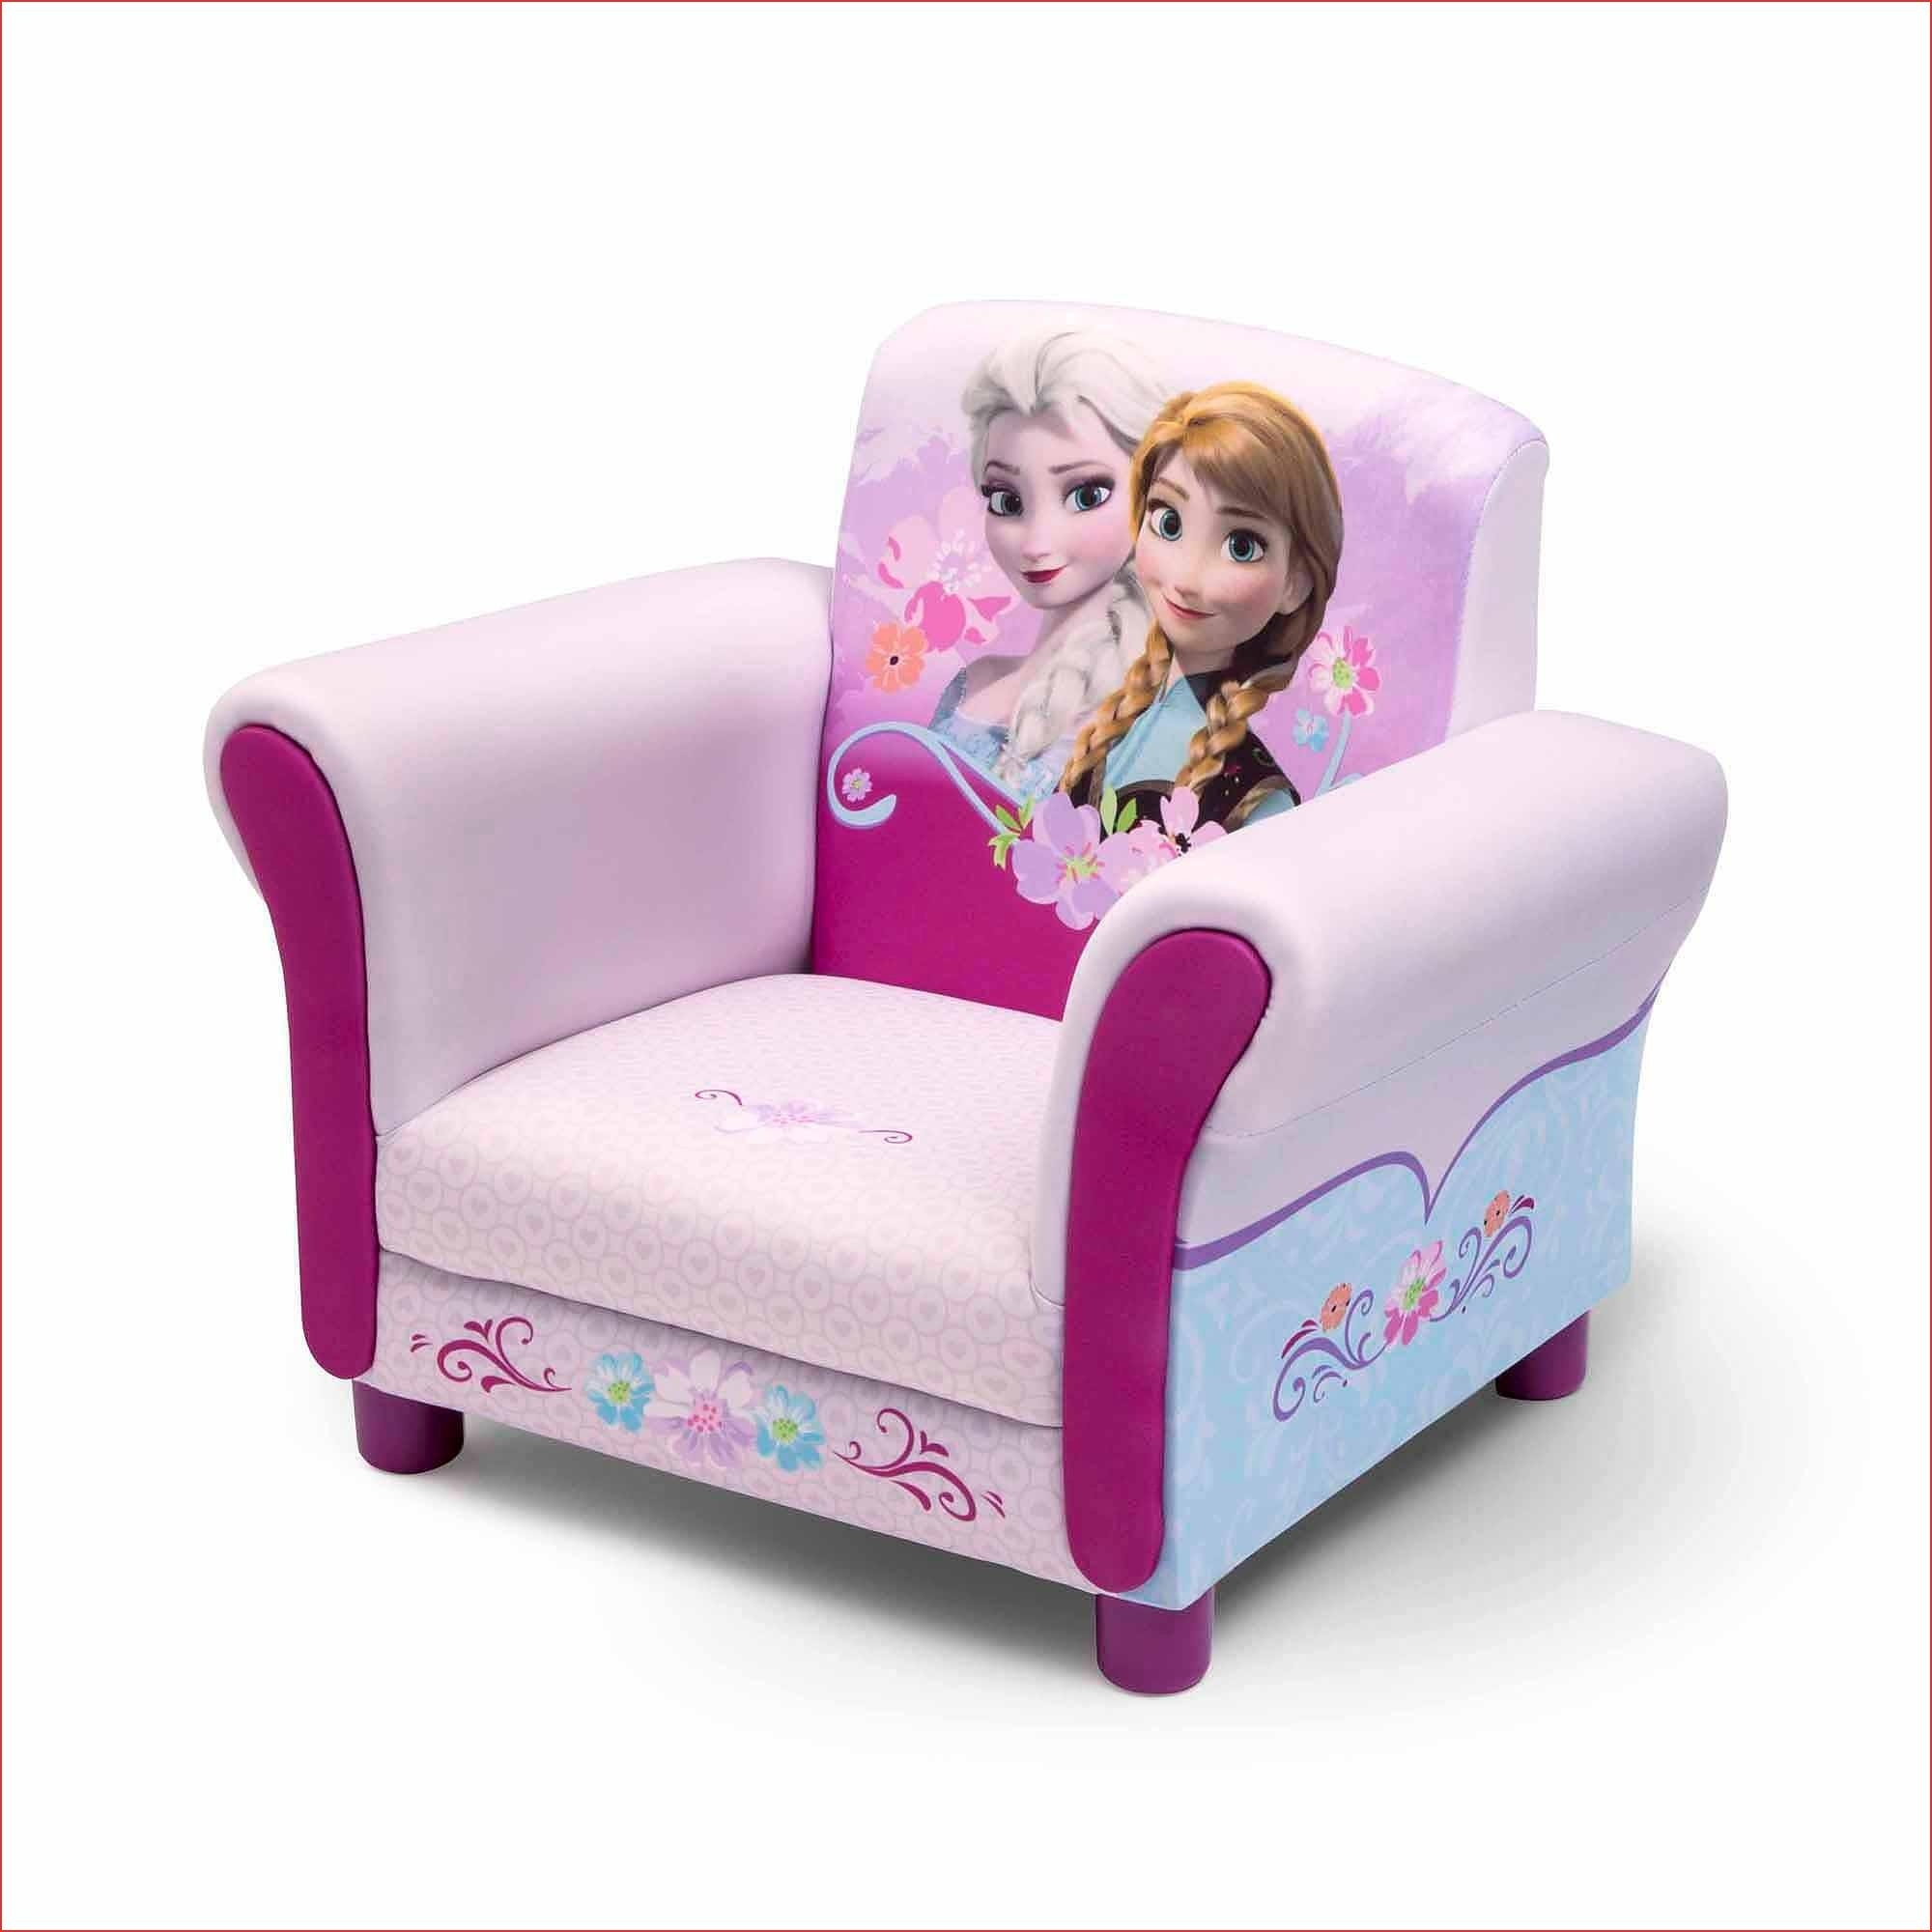 Personalized Kids Chairs & Sofas New Toddler Sofa Chair Chair Kids Within Personalized Kids Chairs And Sofas (Image 16 of 20)